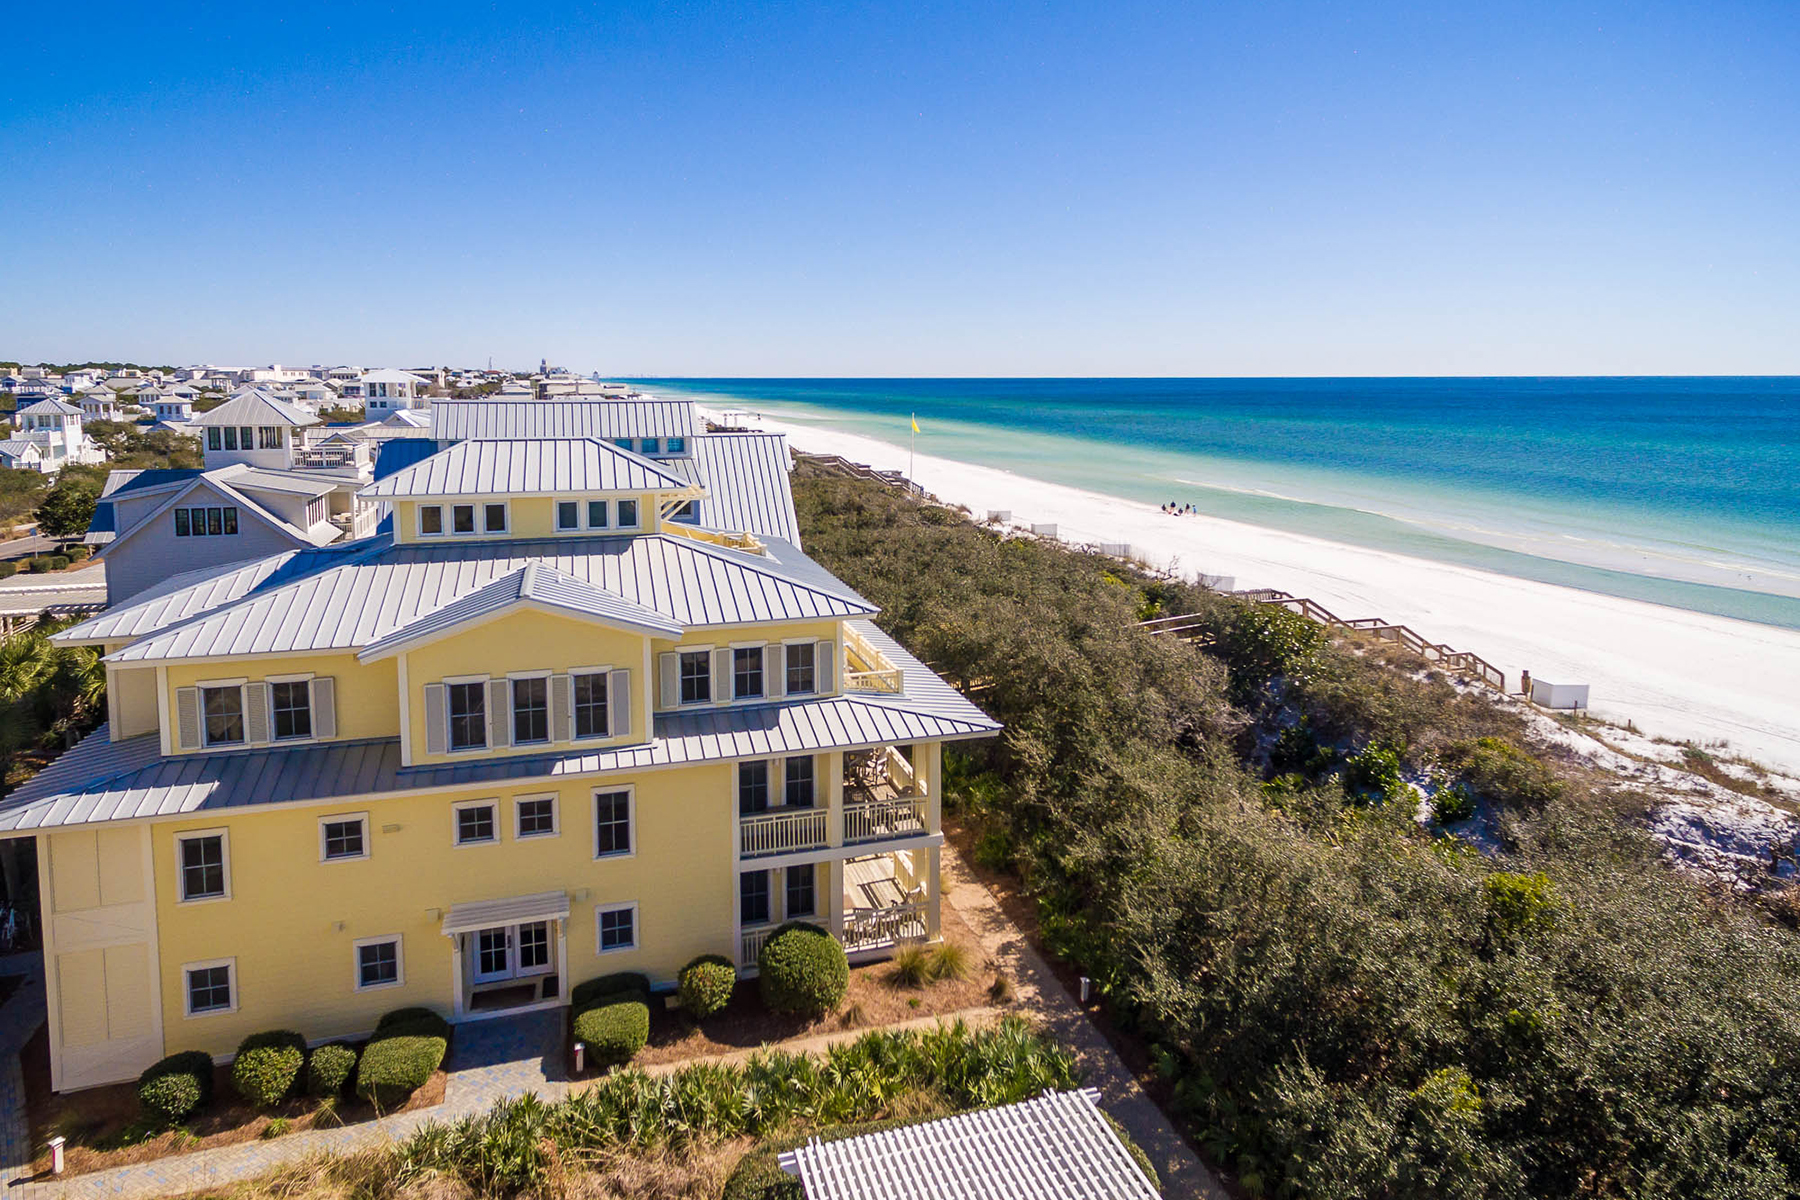 Condomínio para Venda às WATERFRONT CONDO CENTRAL TO WATERCOLOR RESORT AMENITIES 1848 E County Highway 30A 21 Santa Rosa Beach, Florida, 32459 Estados Unidos